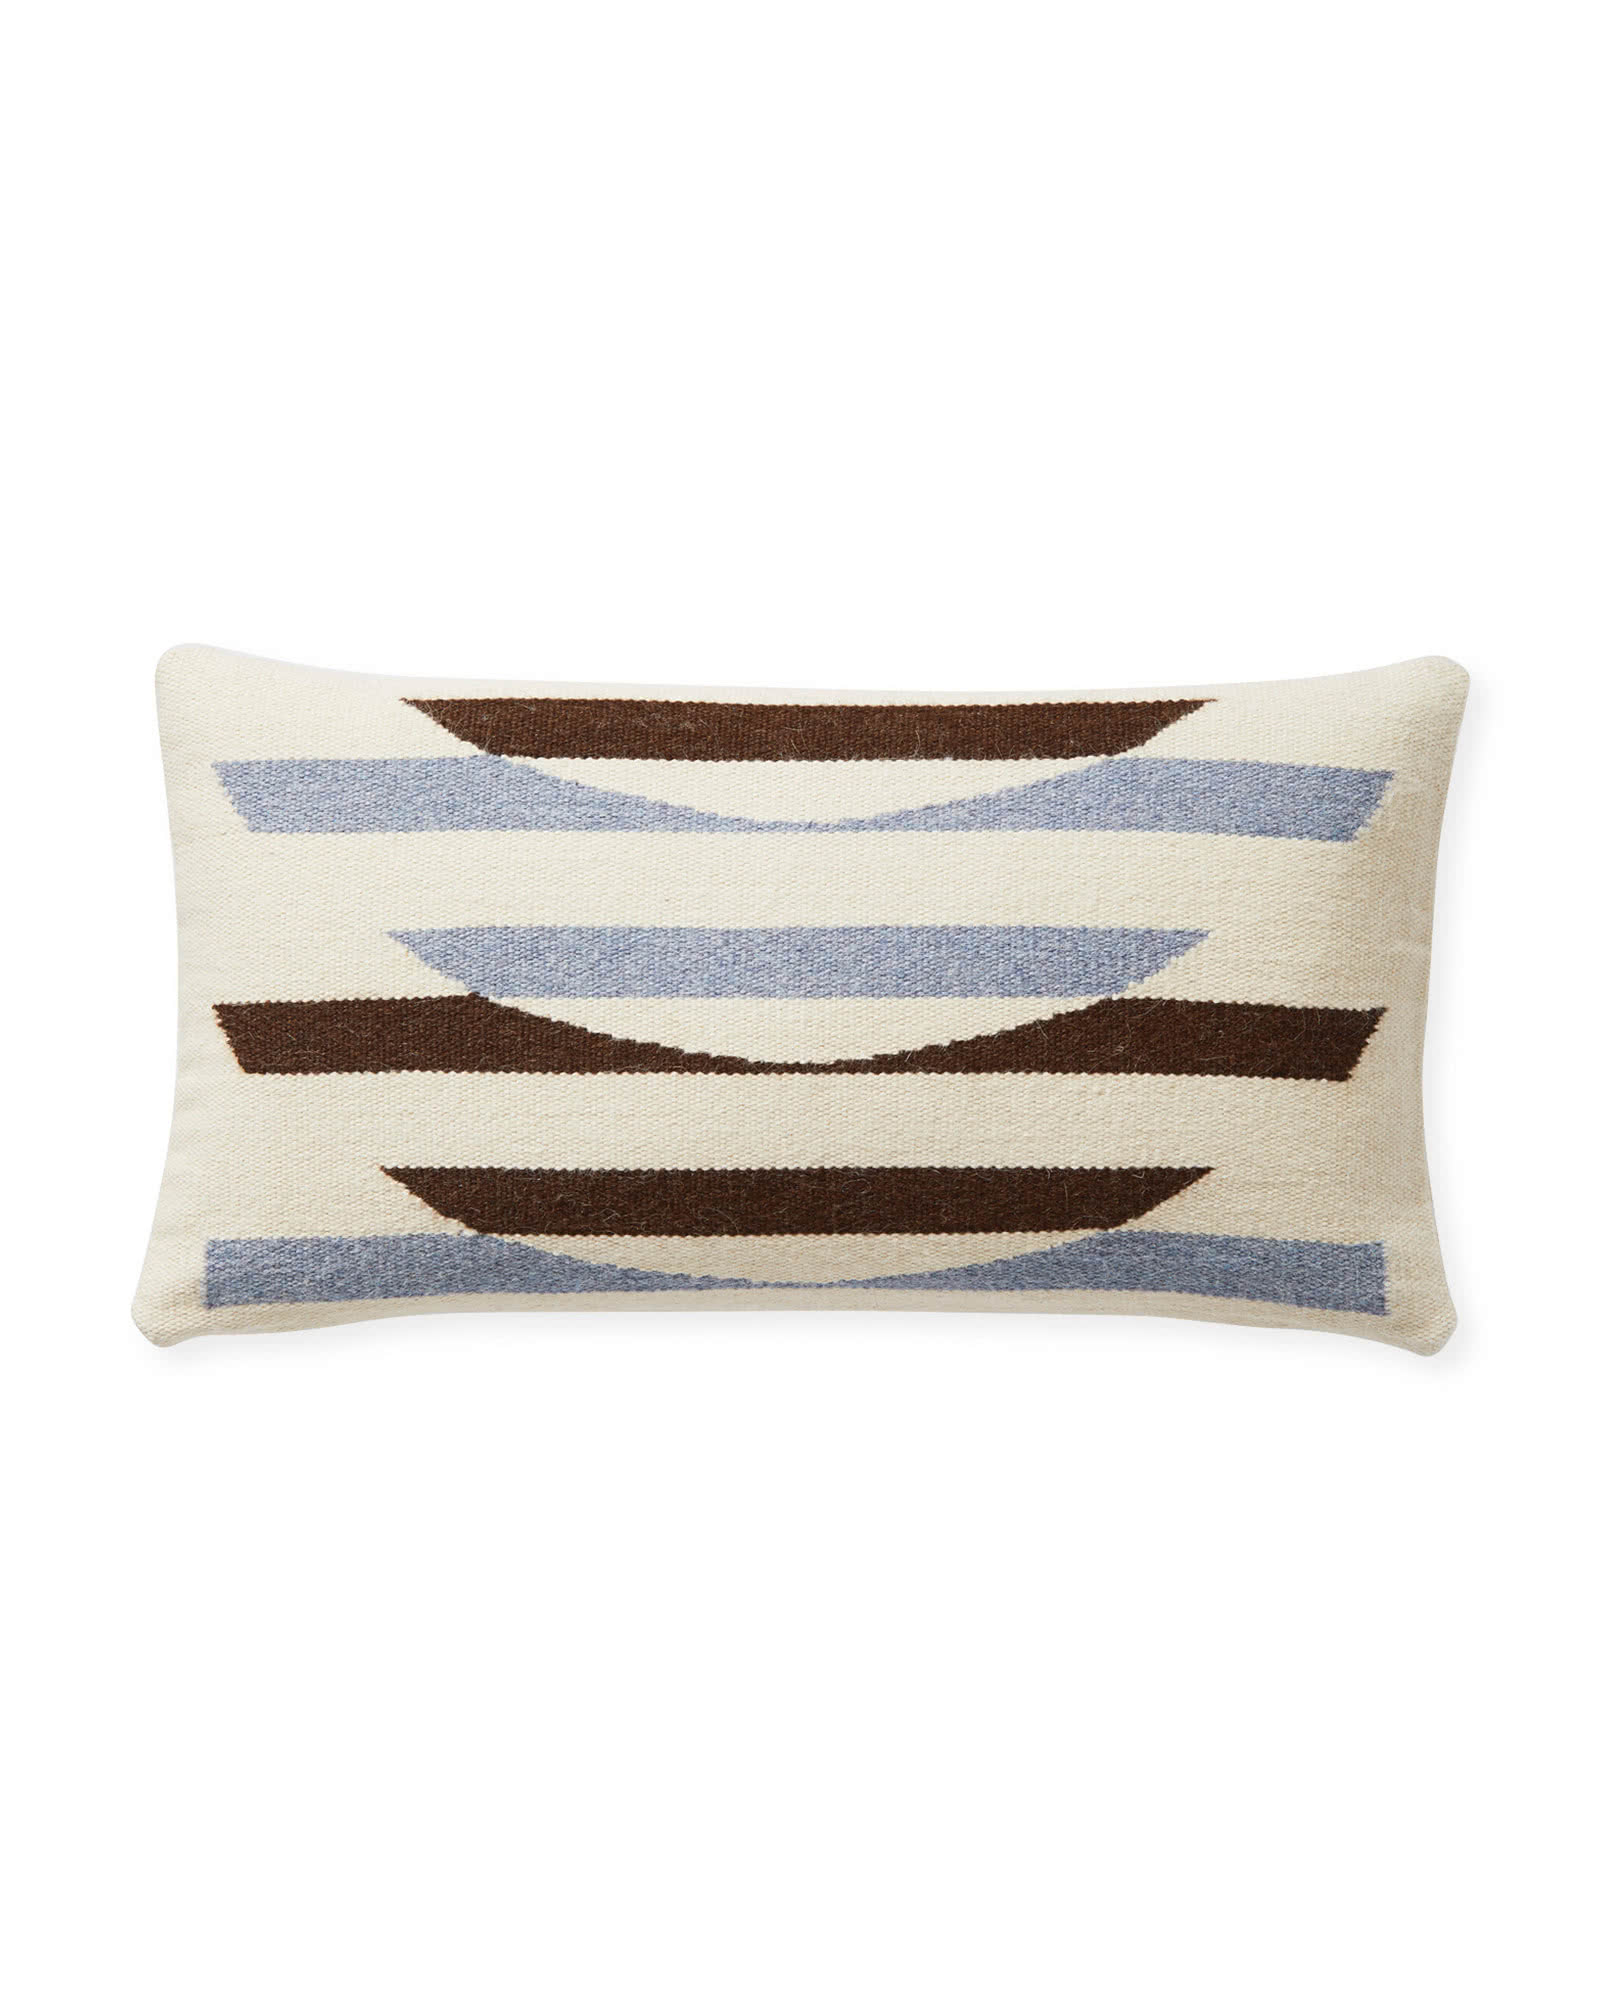 Rosewood Pillow Cover, Earth/Sky